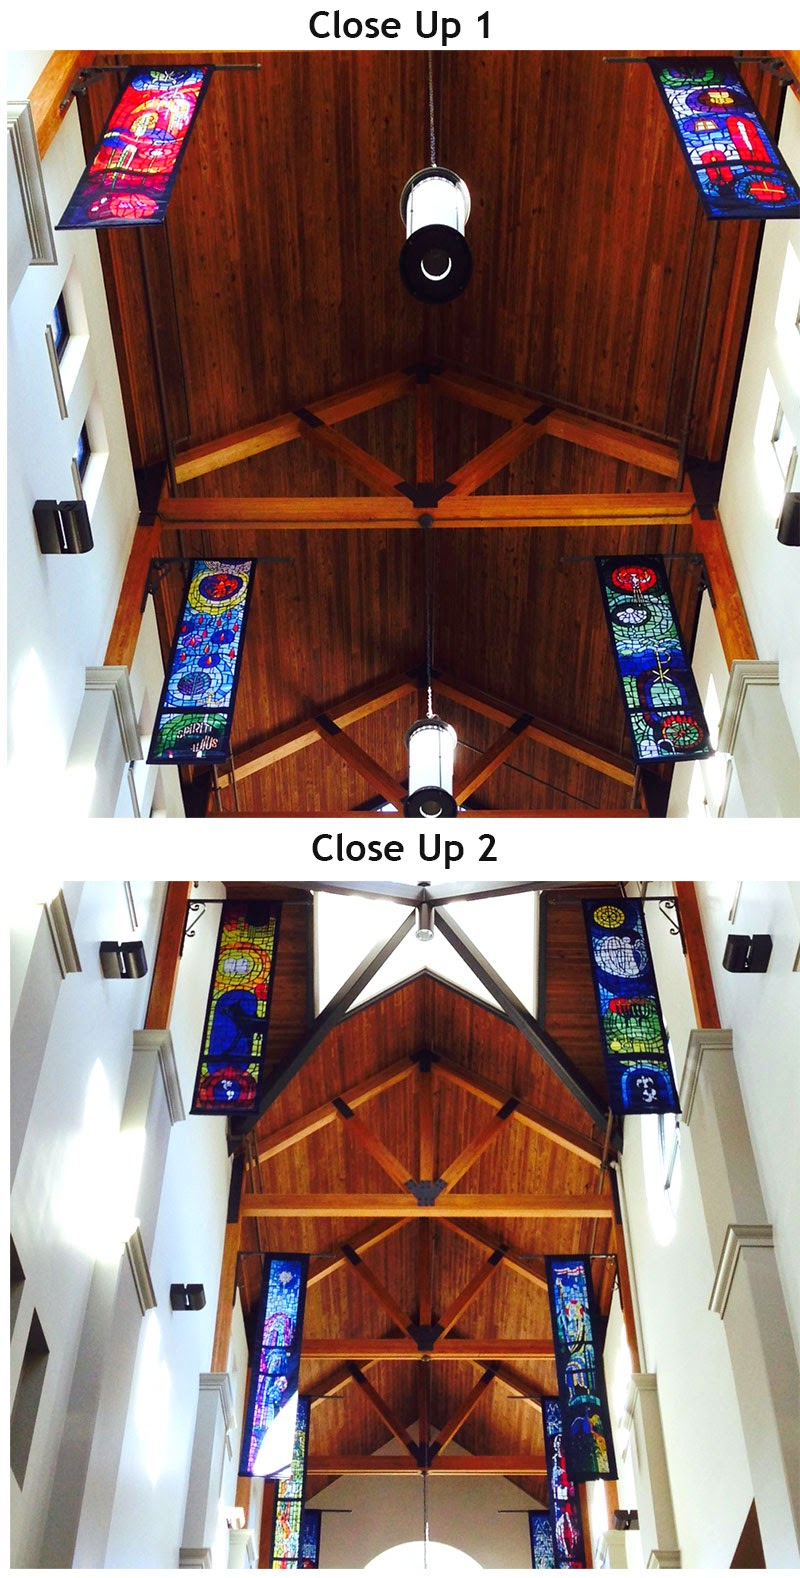 Custom Stained Glass Banners from PraiseBaners